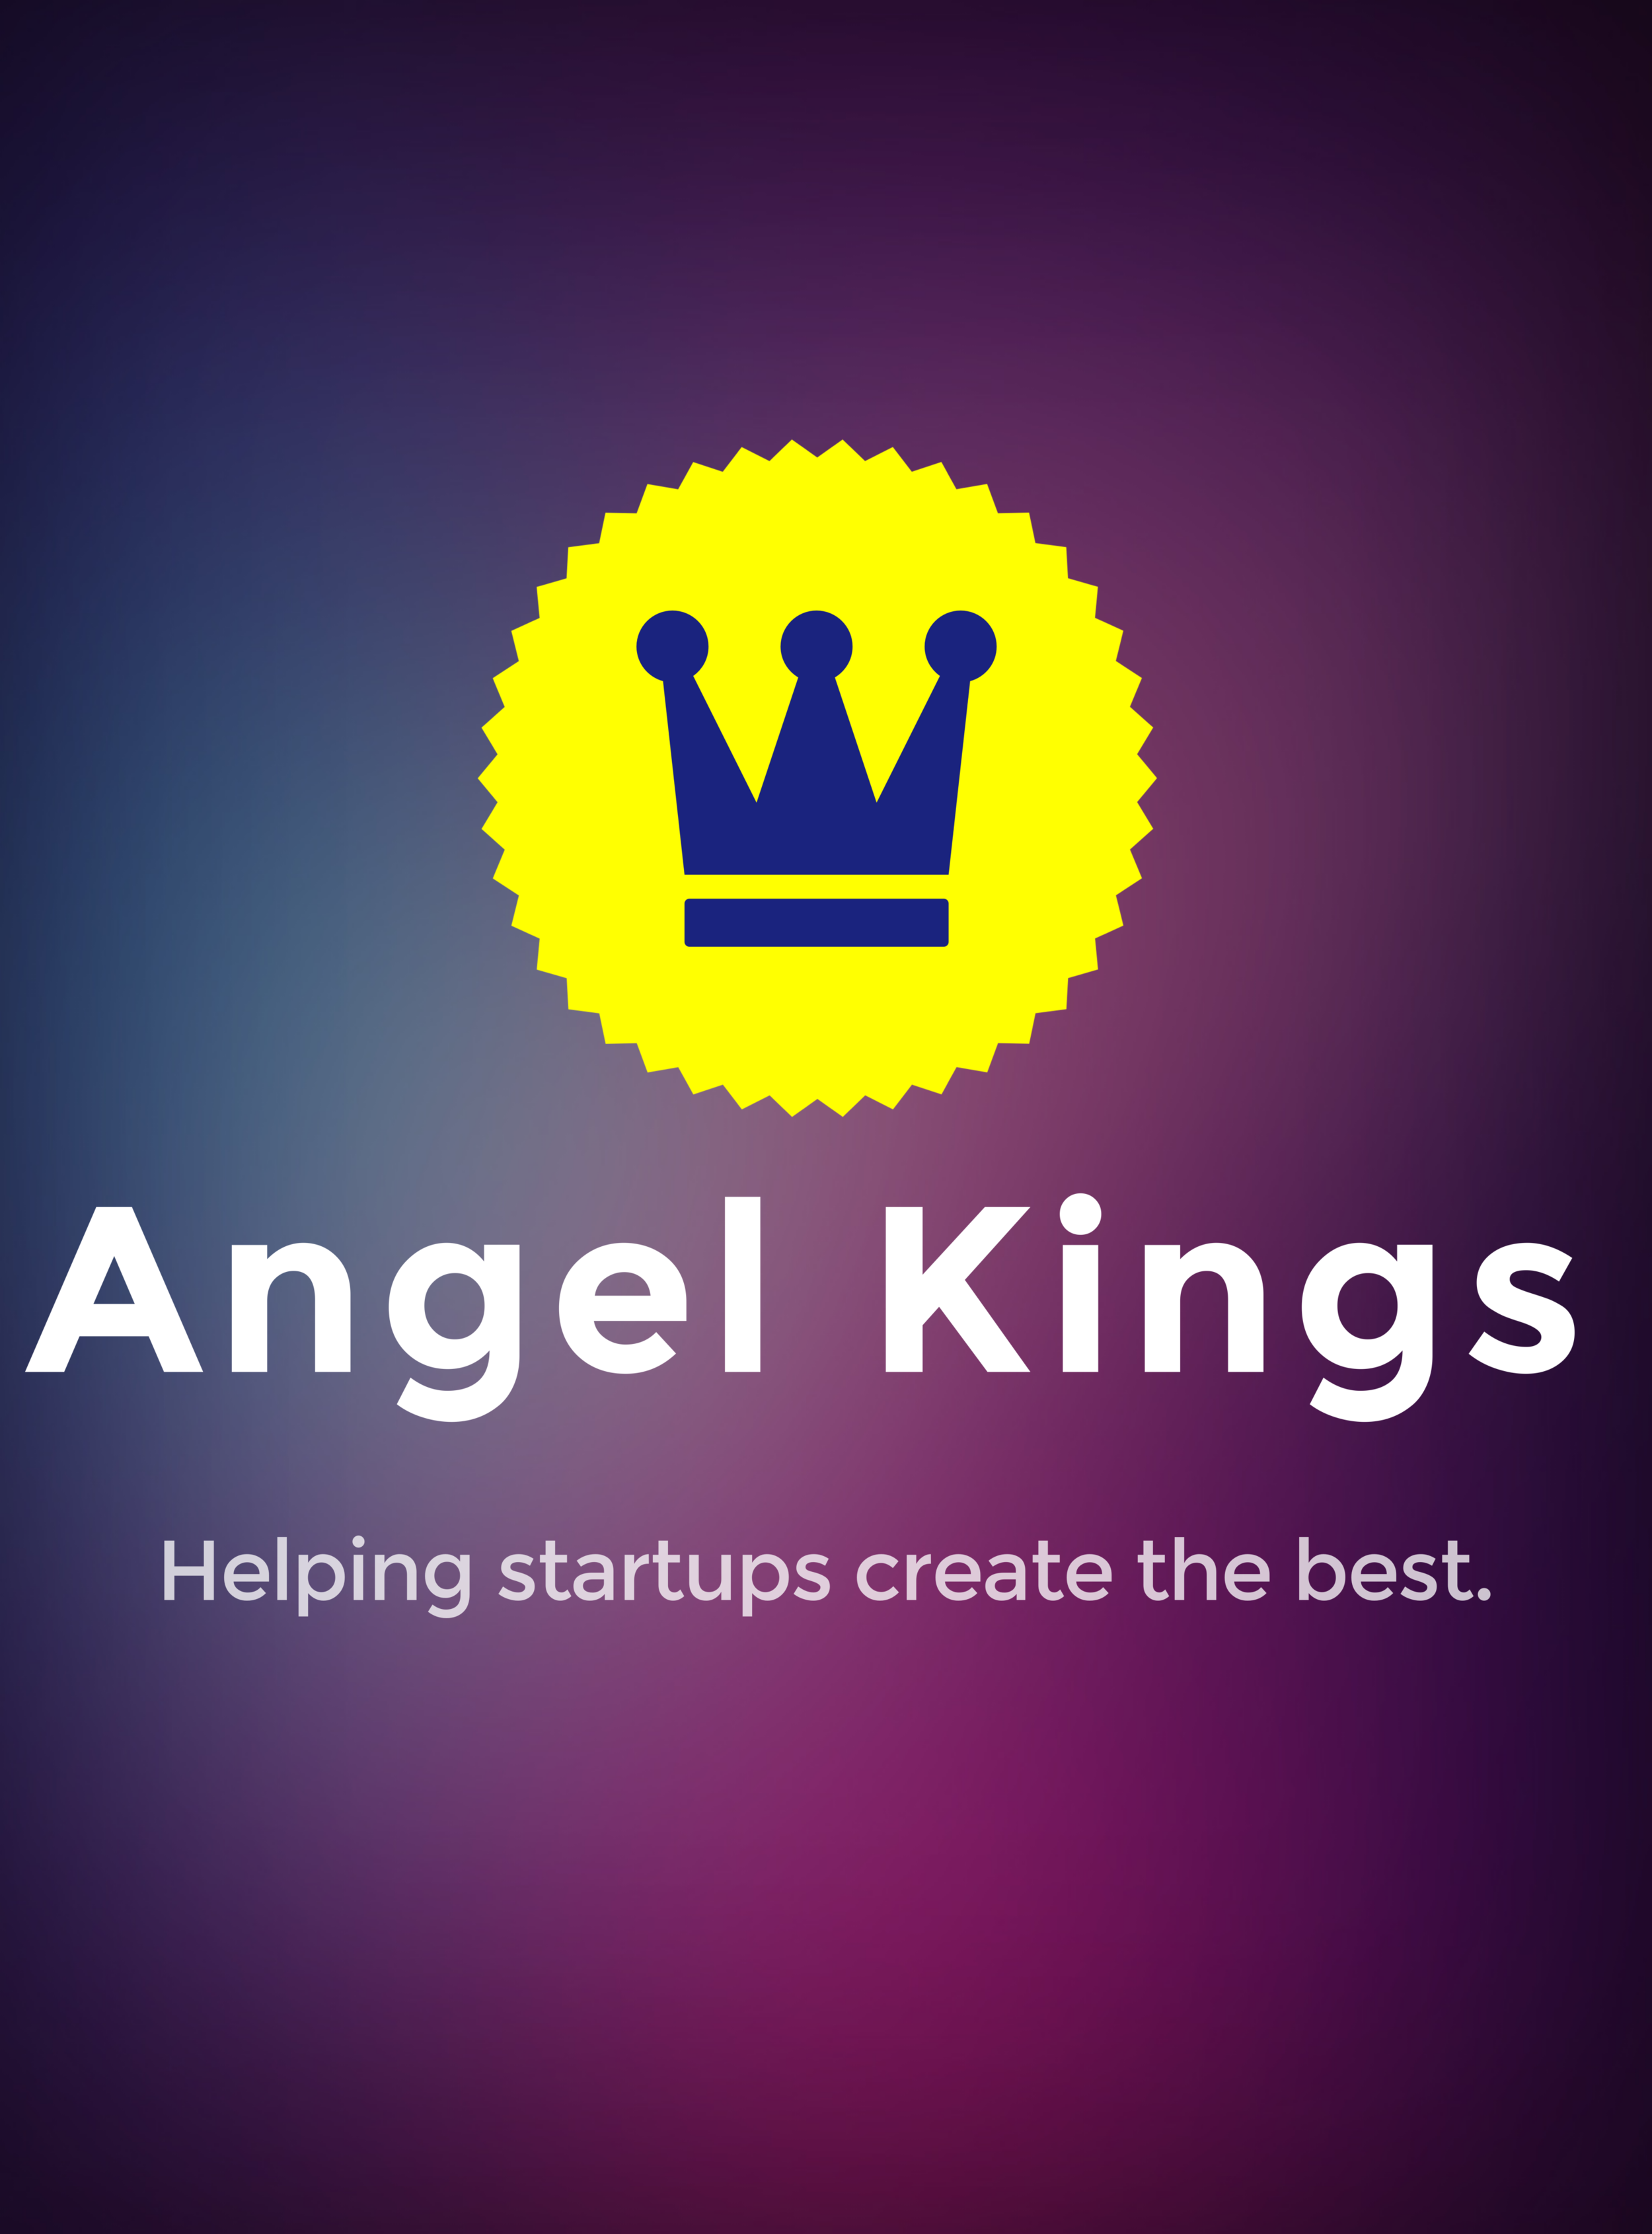 Website Design and Build for Startups  (AngelKings.com)